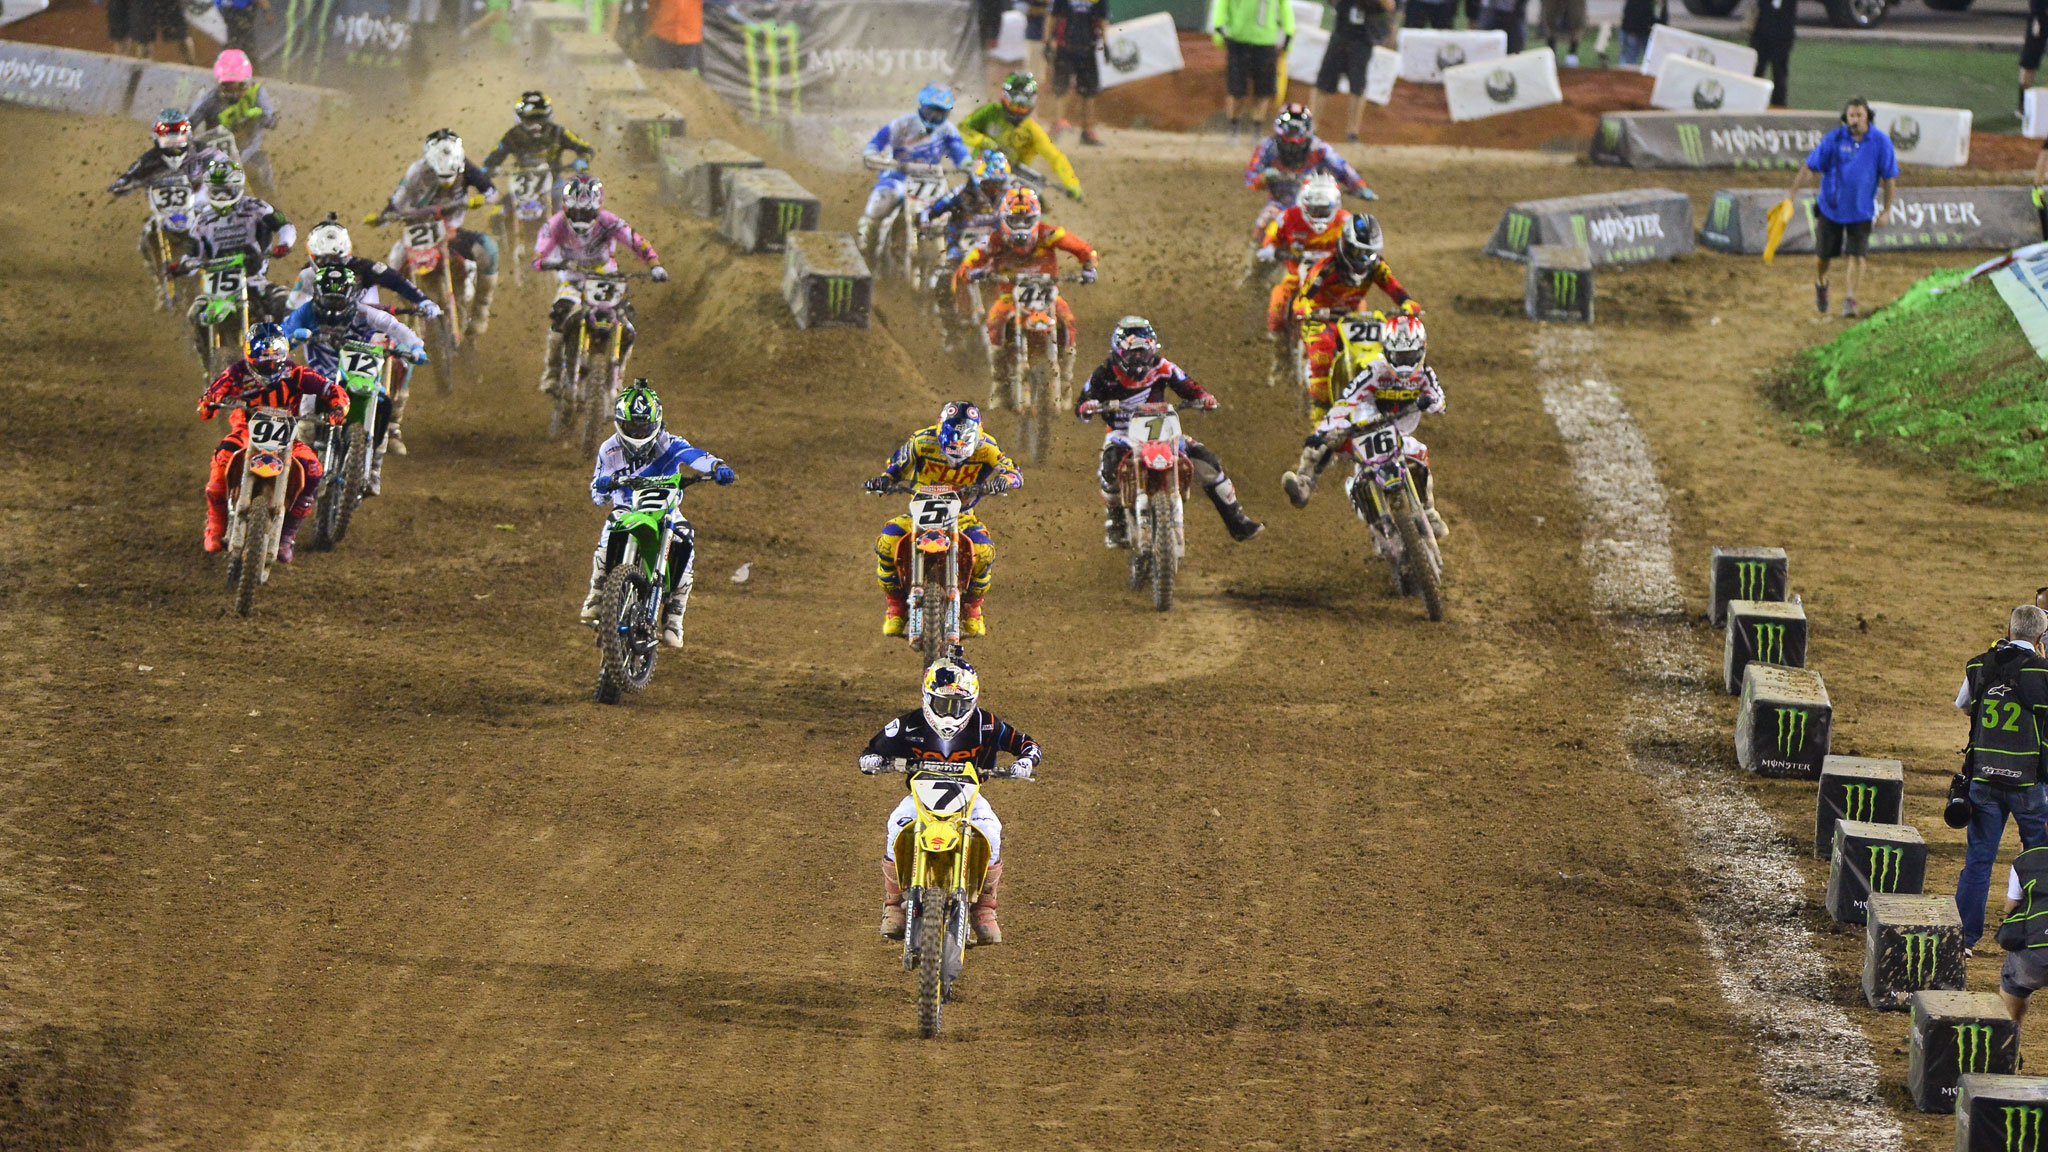 James Stewart leading the pack en route to his Monster Energy Cup victory.